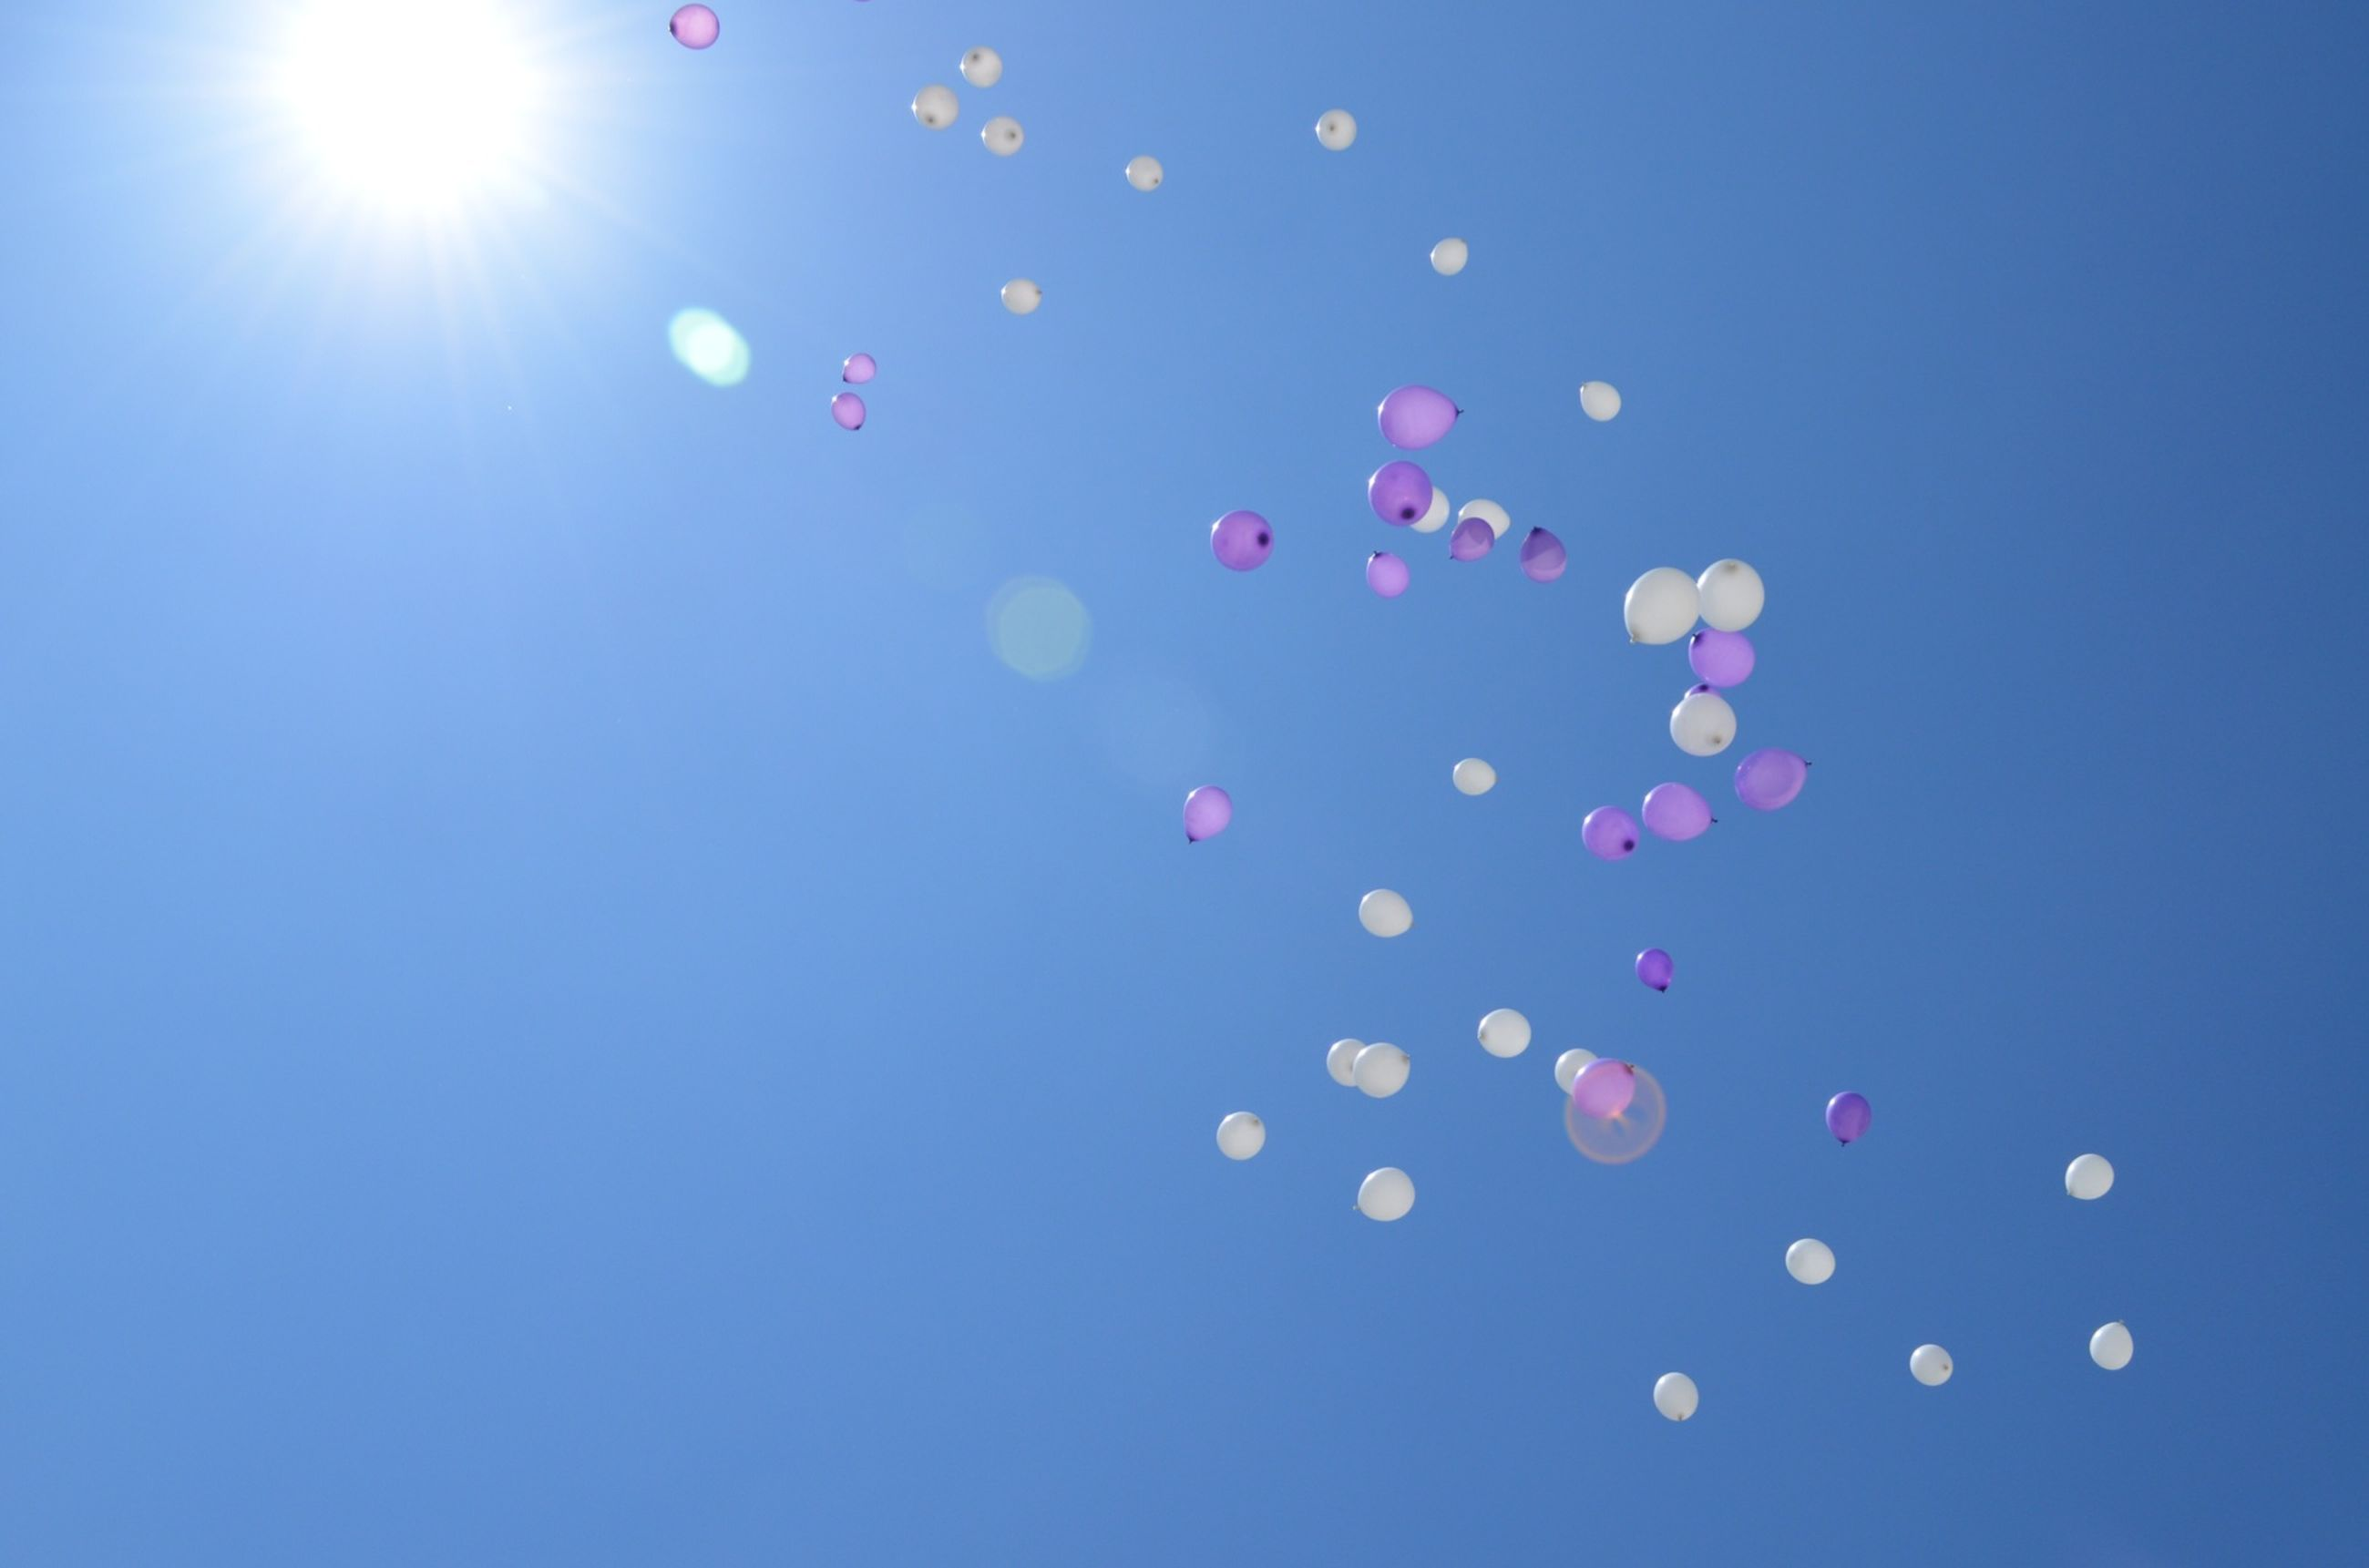 low angle view, sun, blue, lens flare, clear sky, sunlight, sunbeam, multi colored, bright, sunny, copy space, sky, balloon, outdoors, day, mid-air, no people, nature, beauty in nature, tranquility